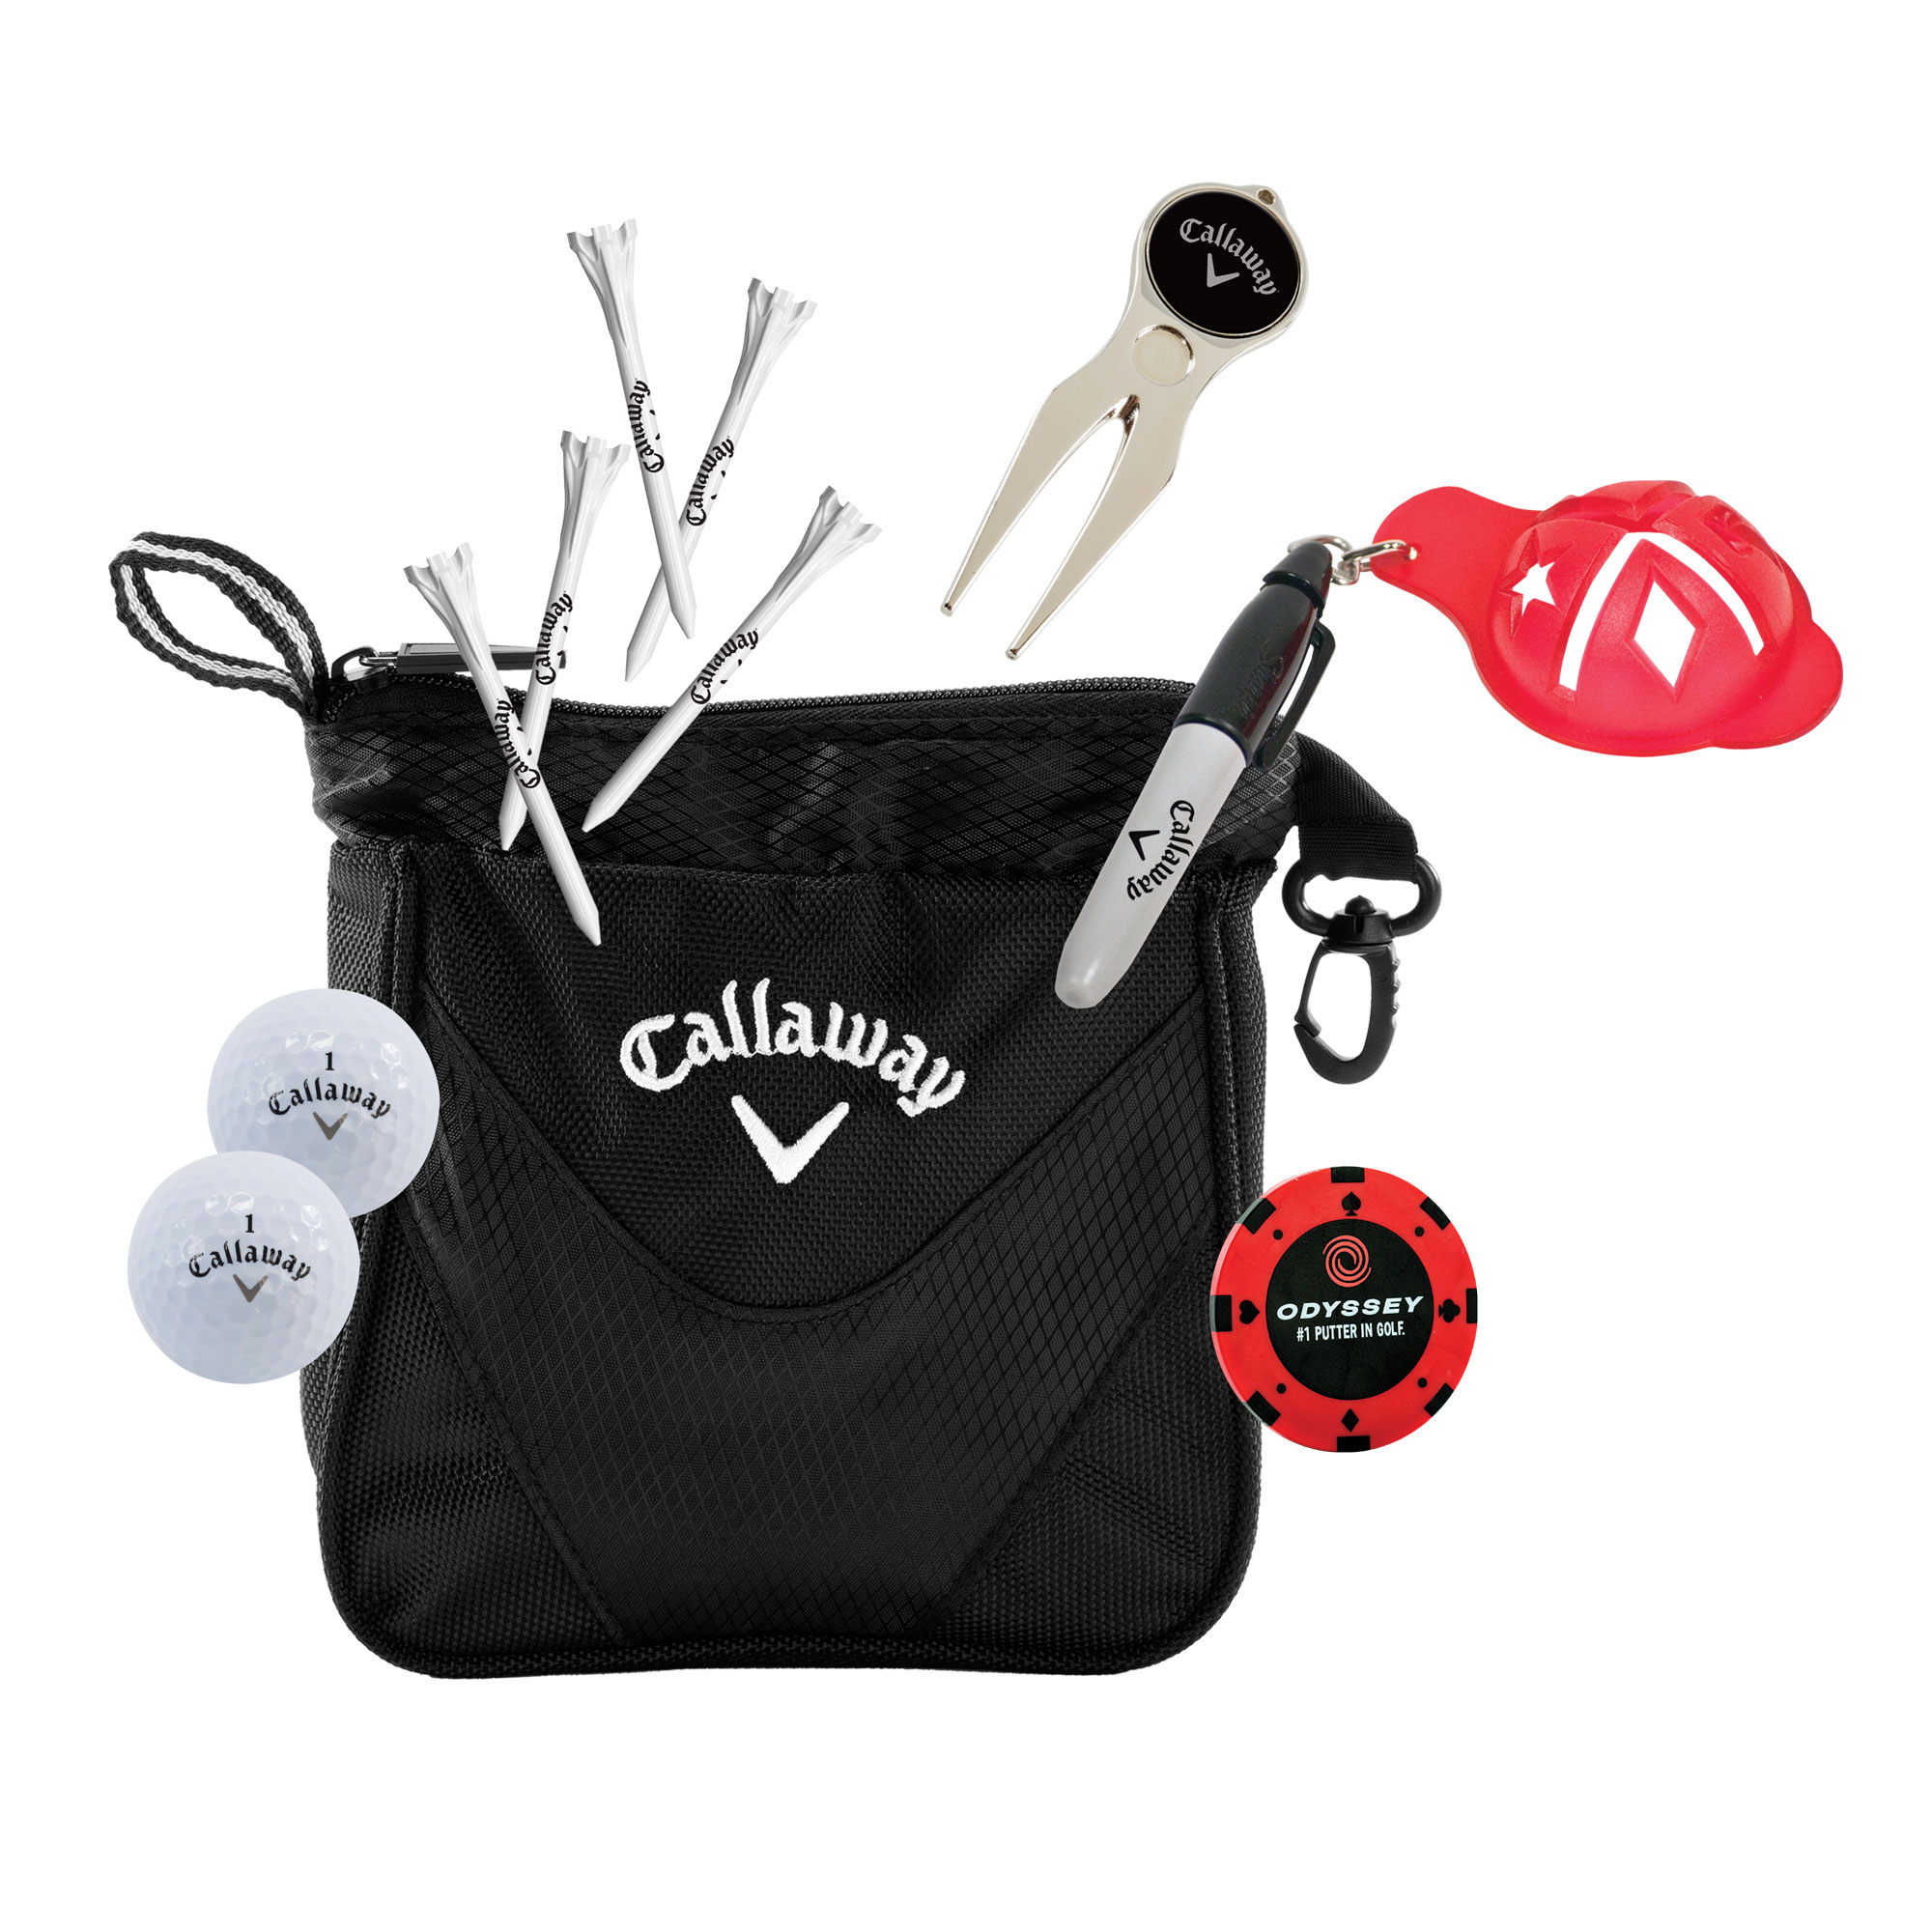 Starter kit golf clubs